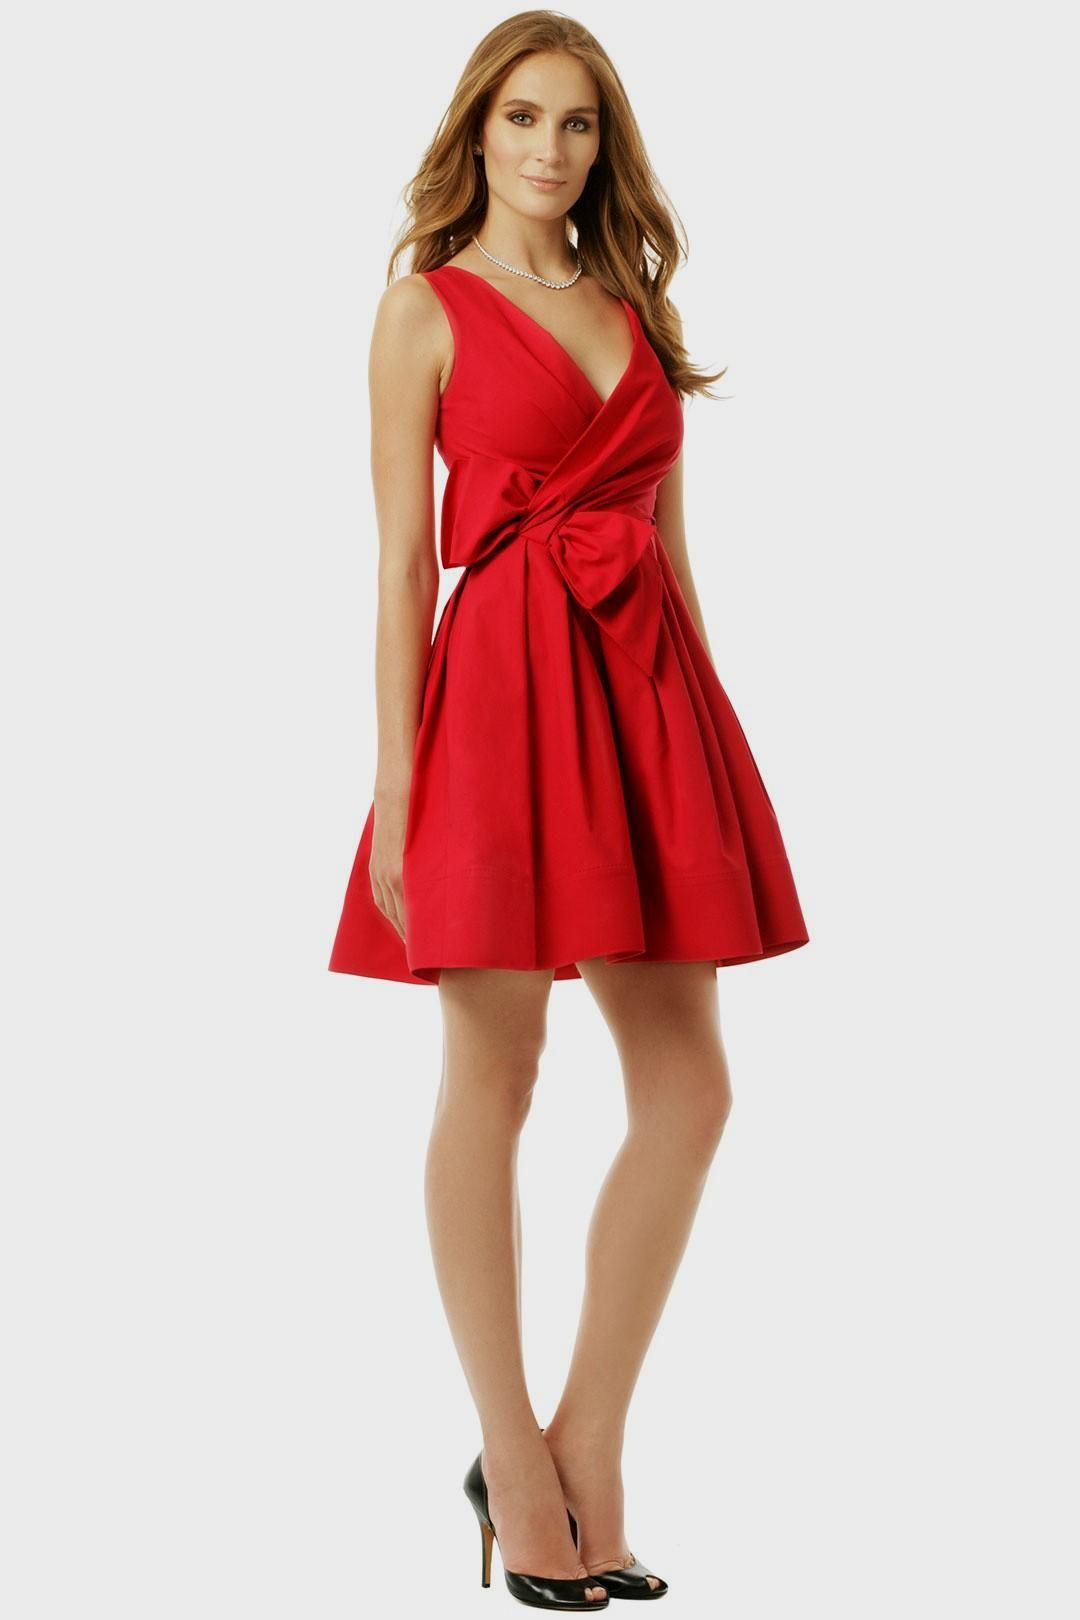 17 Best images about Little Red Dress on Pinterest | Classy short ...